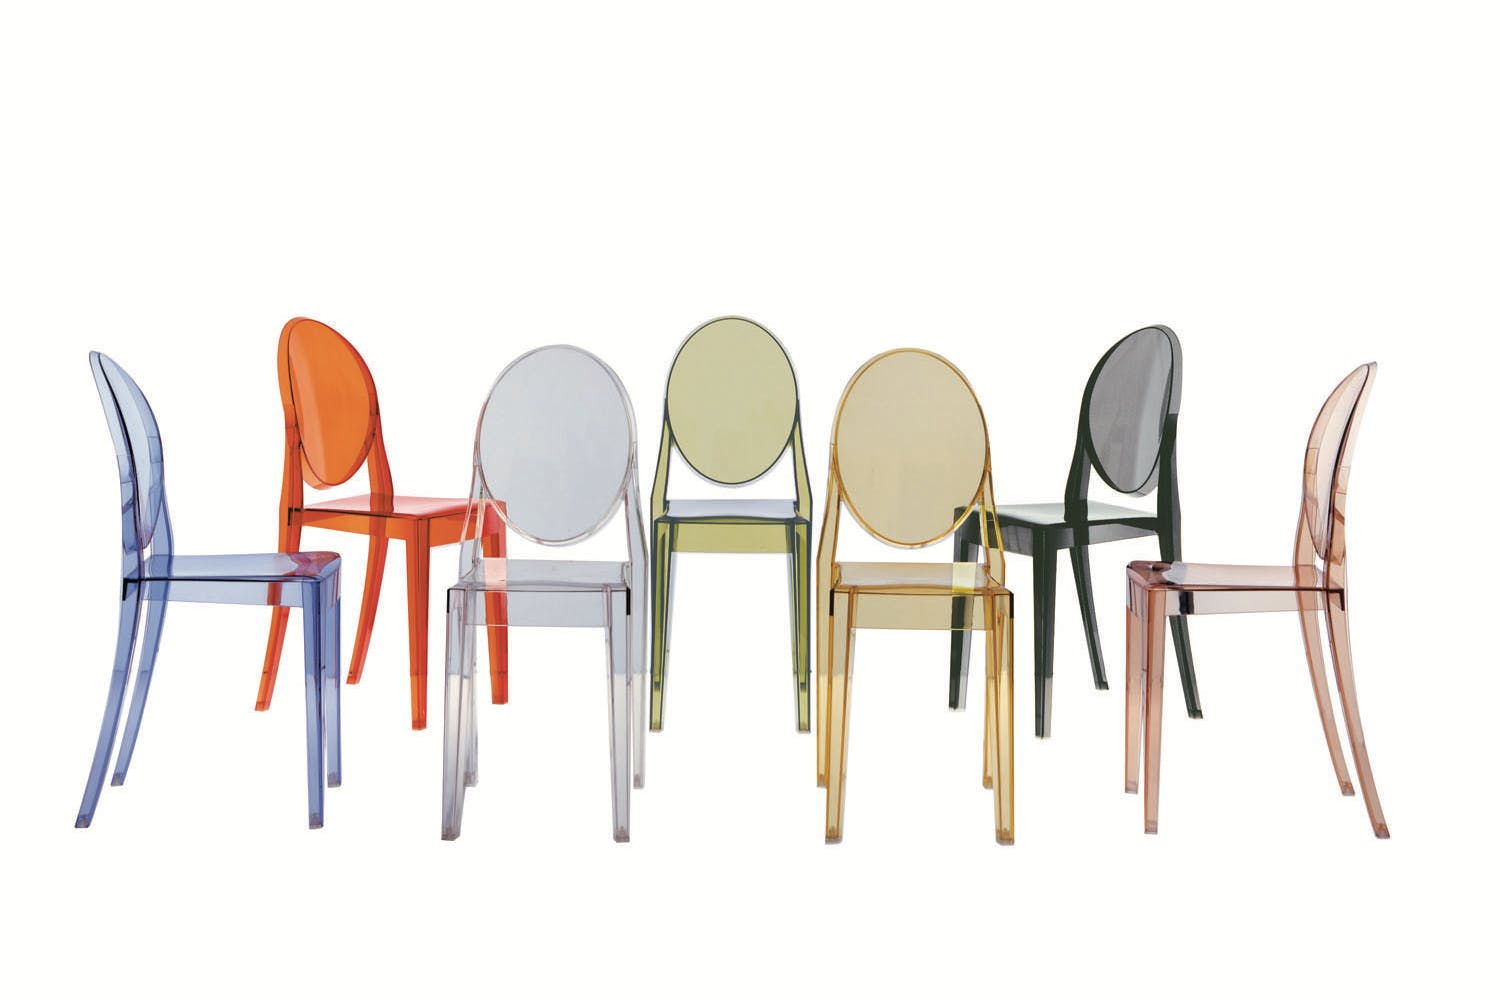 victoria ghost chair by philippe starck for kartell. Black Bedroom Furniture Sets. Home Design Ideas